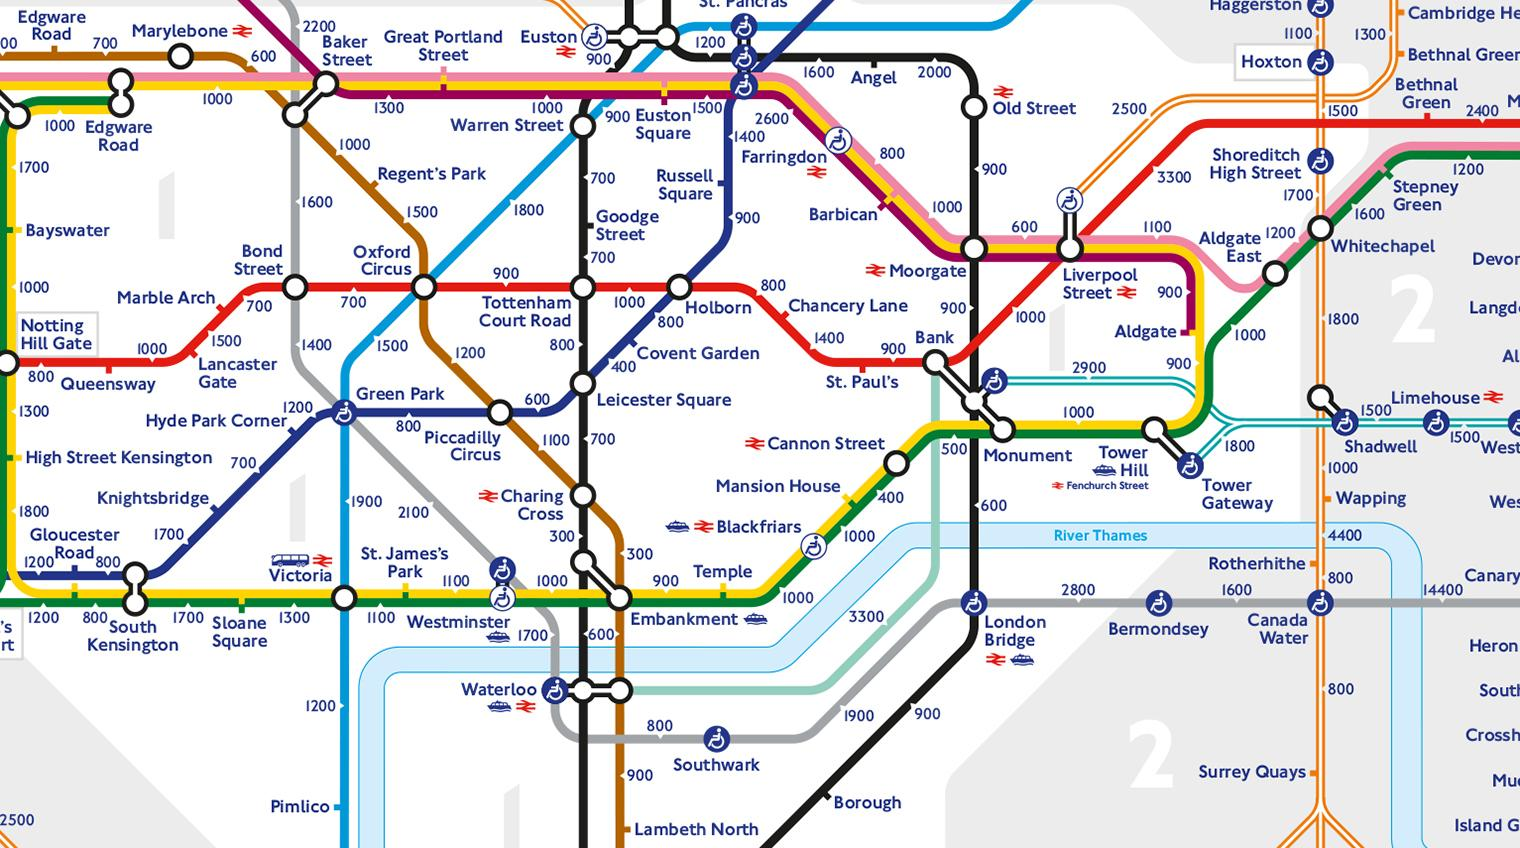 London 1600 Map.8 Amazing Alternative London Tube Maps Indy100